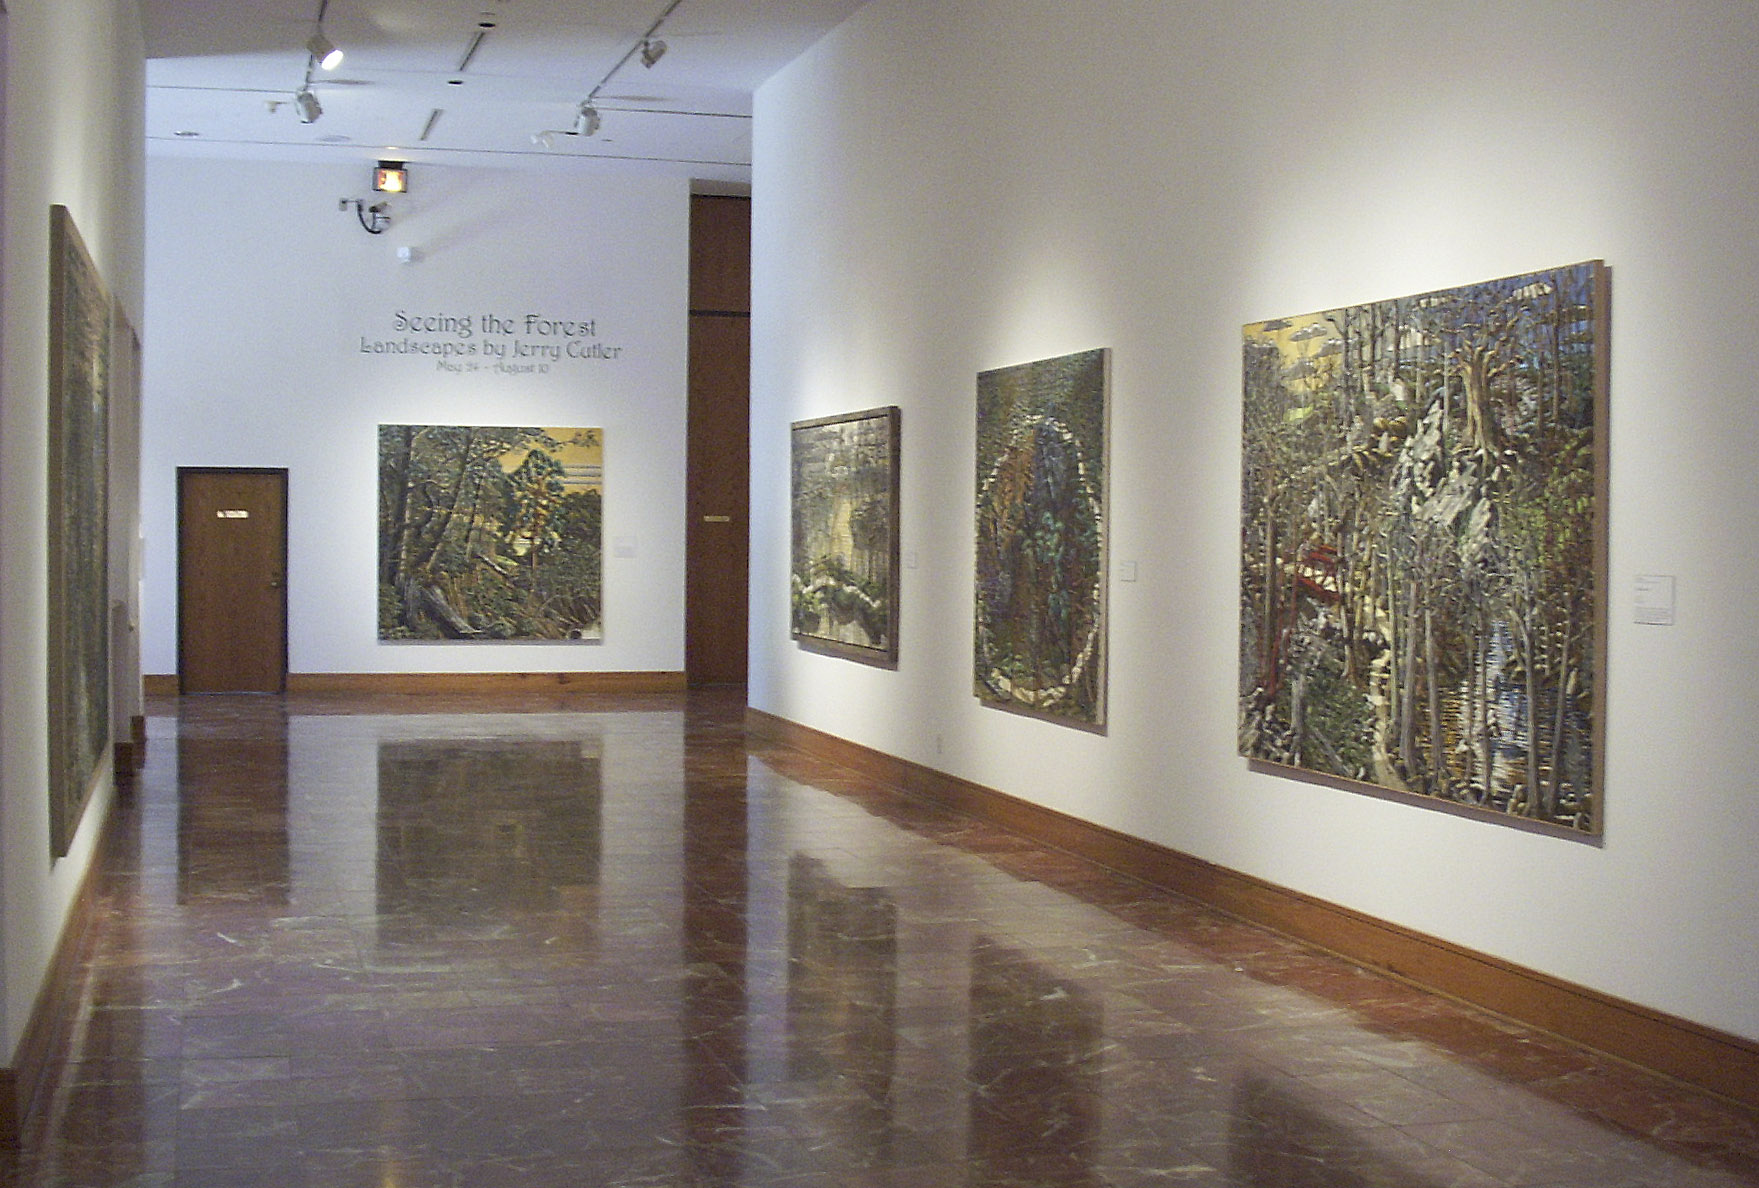 Seeing the Forest: Landscapes by Jerry Cutler, 2003.